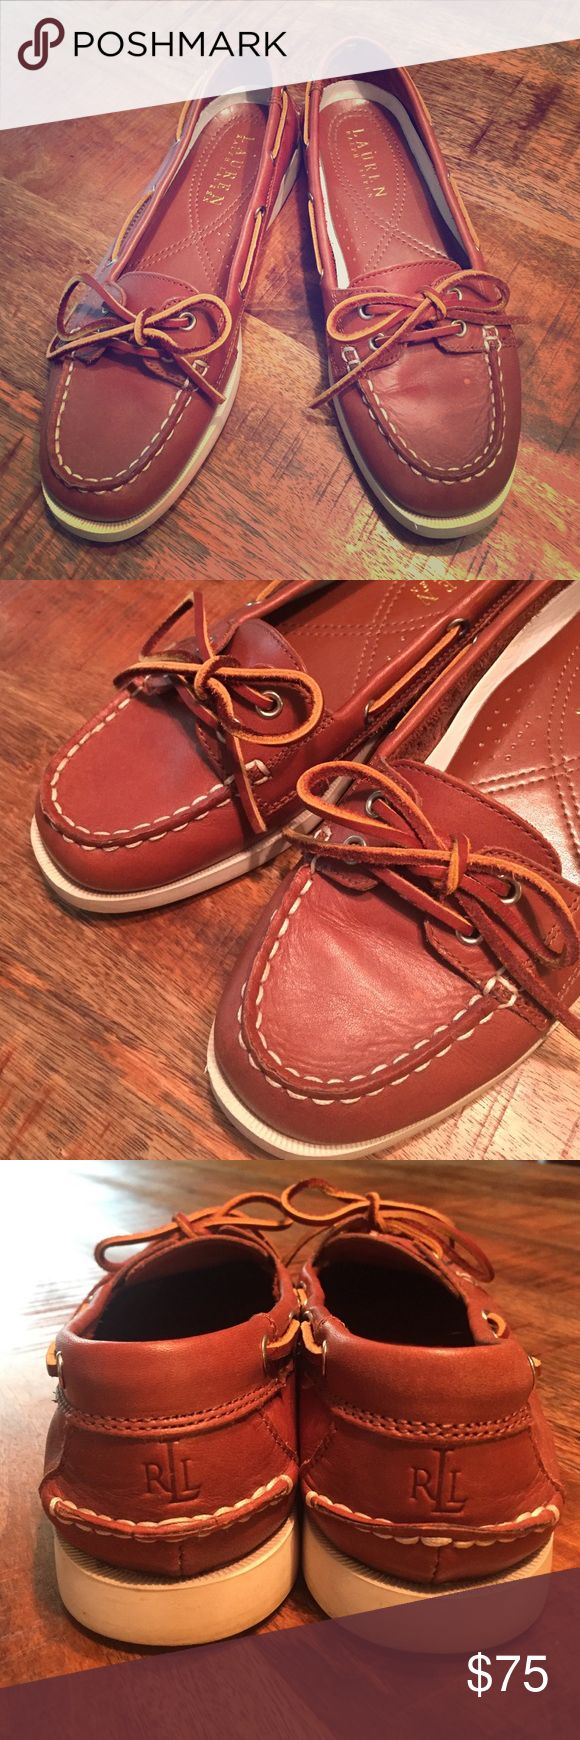 Ralph Lauren womens boat shoes Only worn a few times, look new. Light brown leather, cow-hide tie, white exterior stitching. A classic alternative to the uber trendy Sperrys. Make an offer! Ralph Lauren Shoes Flats & Loafers